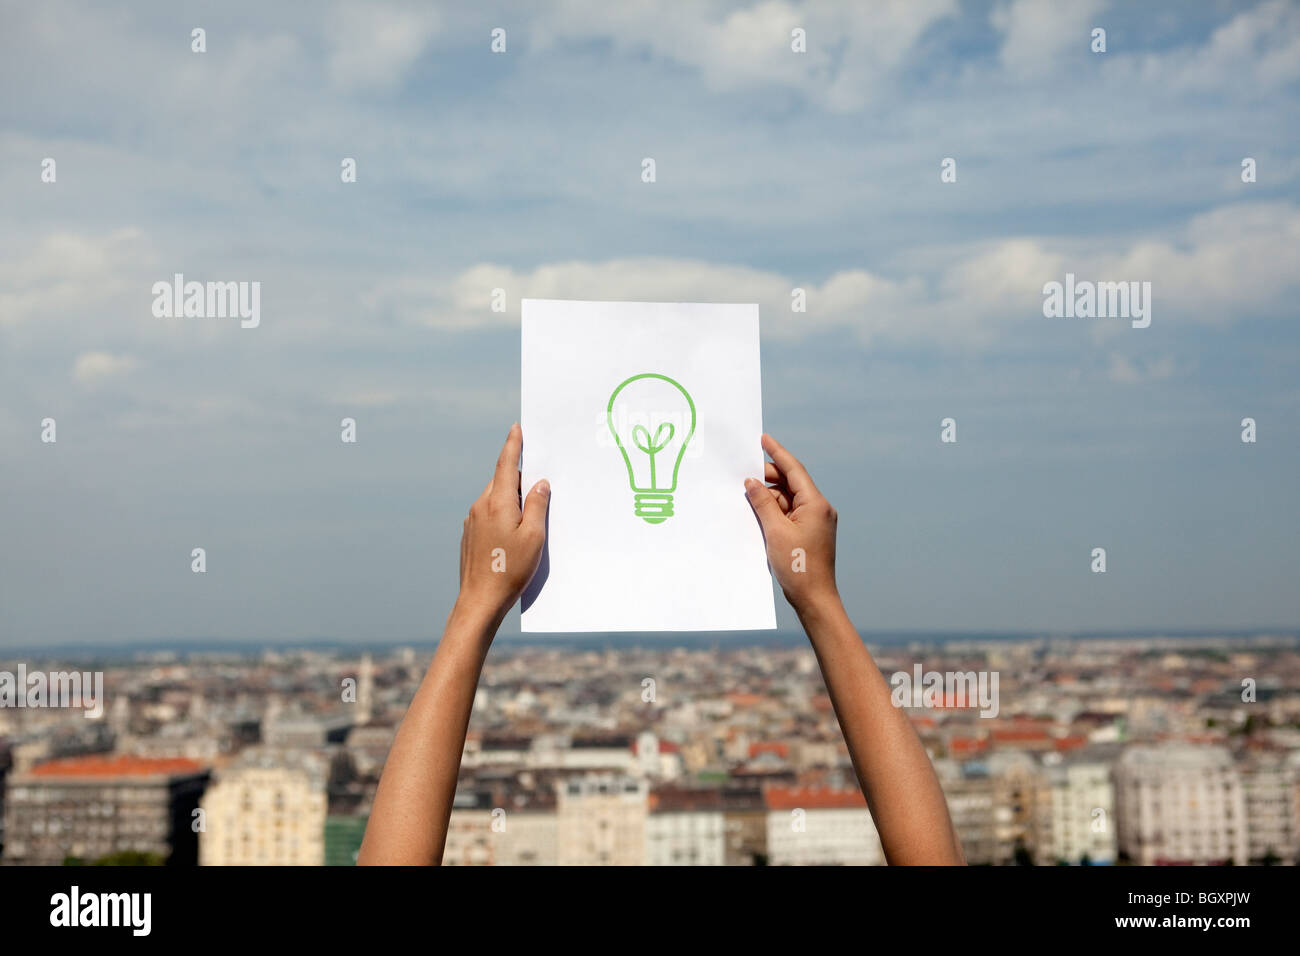 Woman holding paper green light - Stock Image